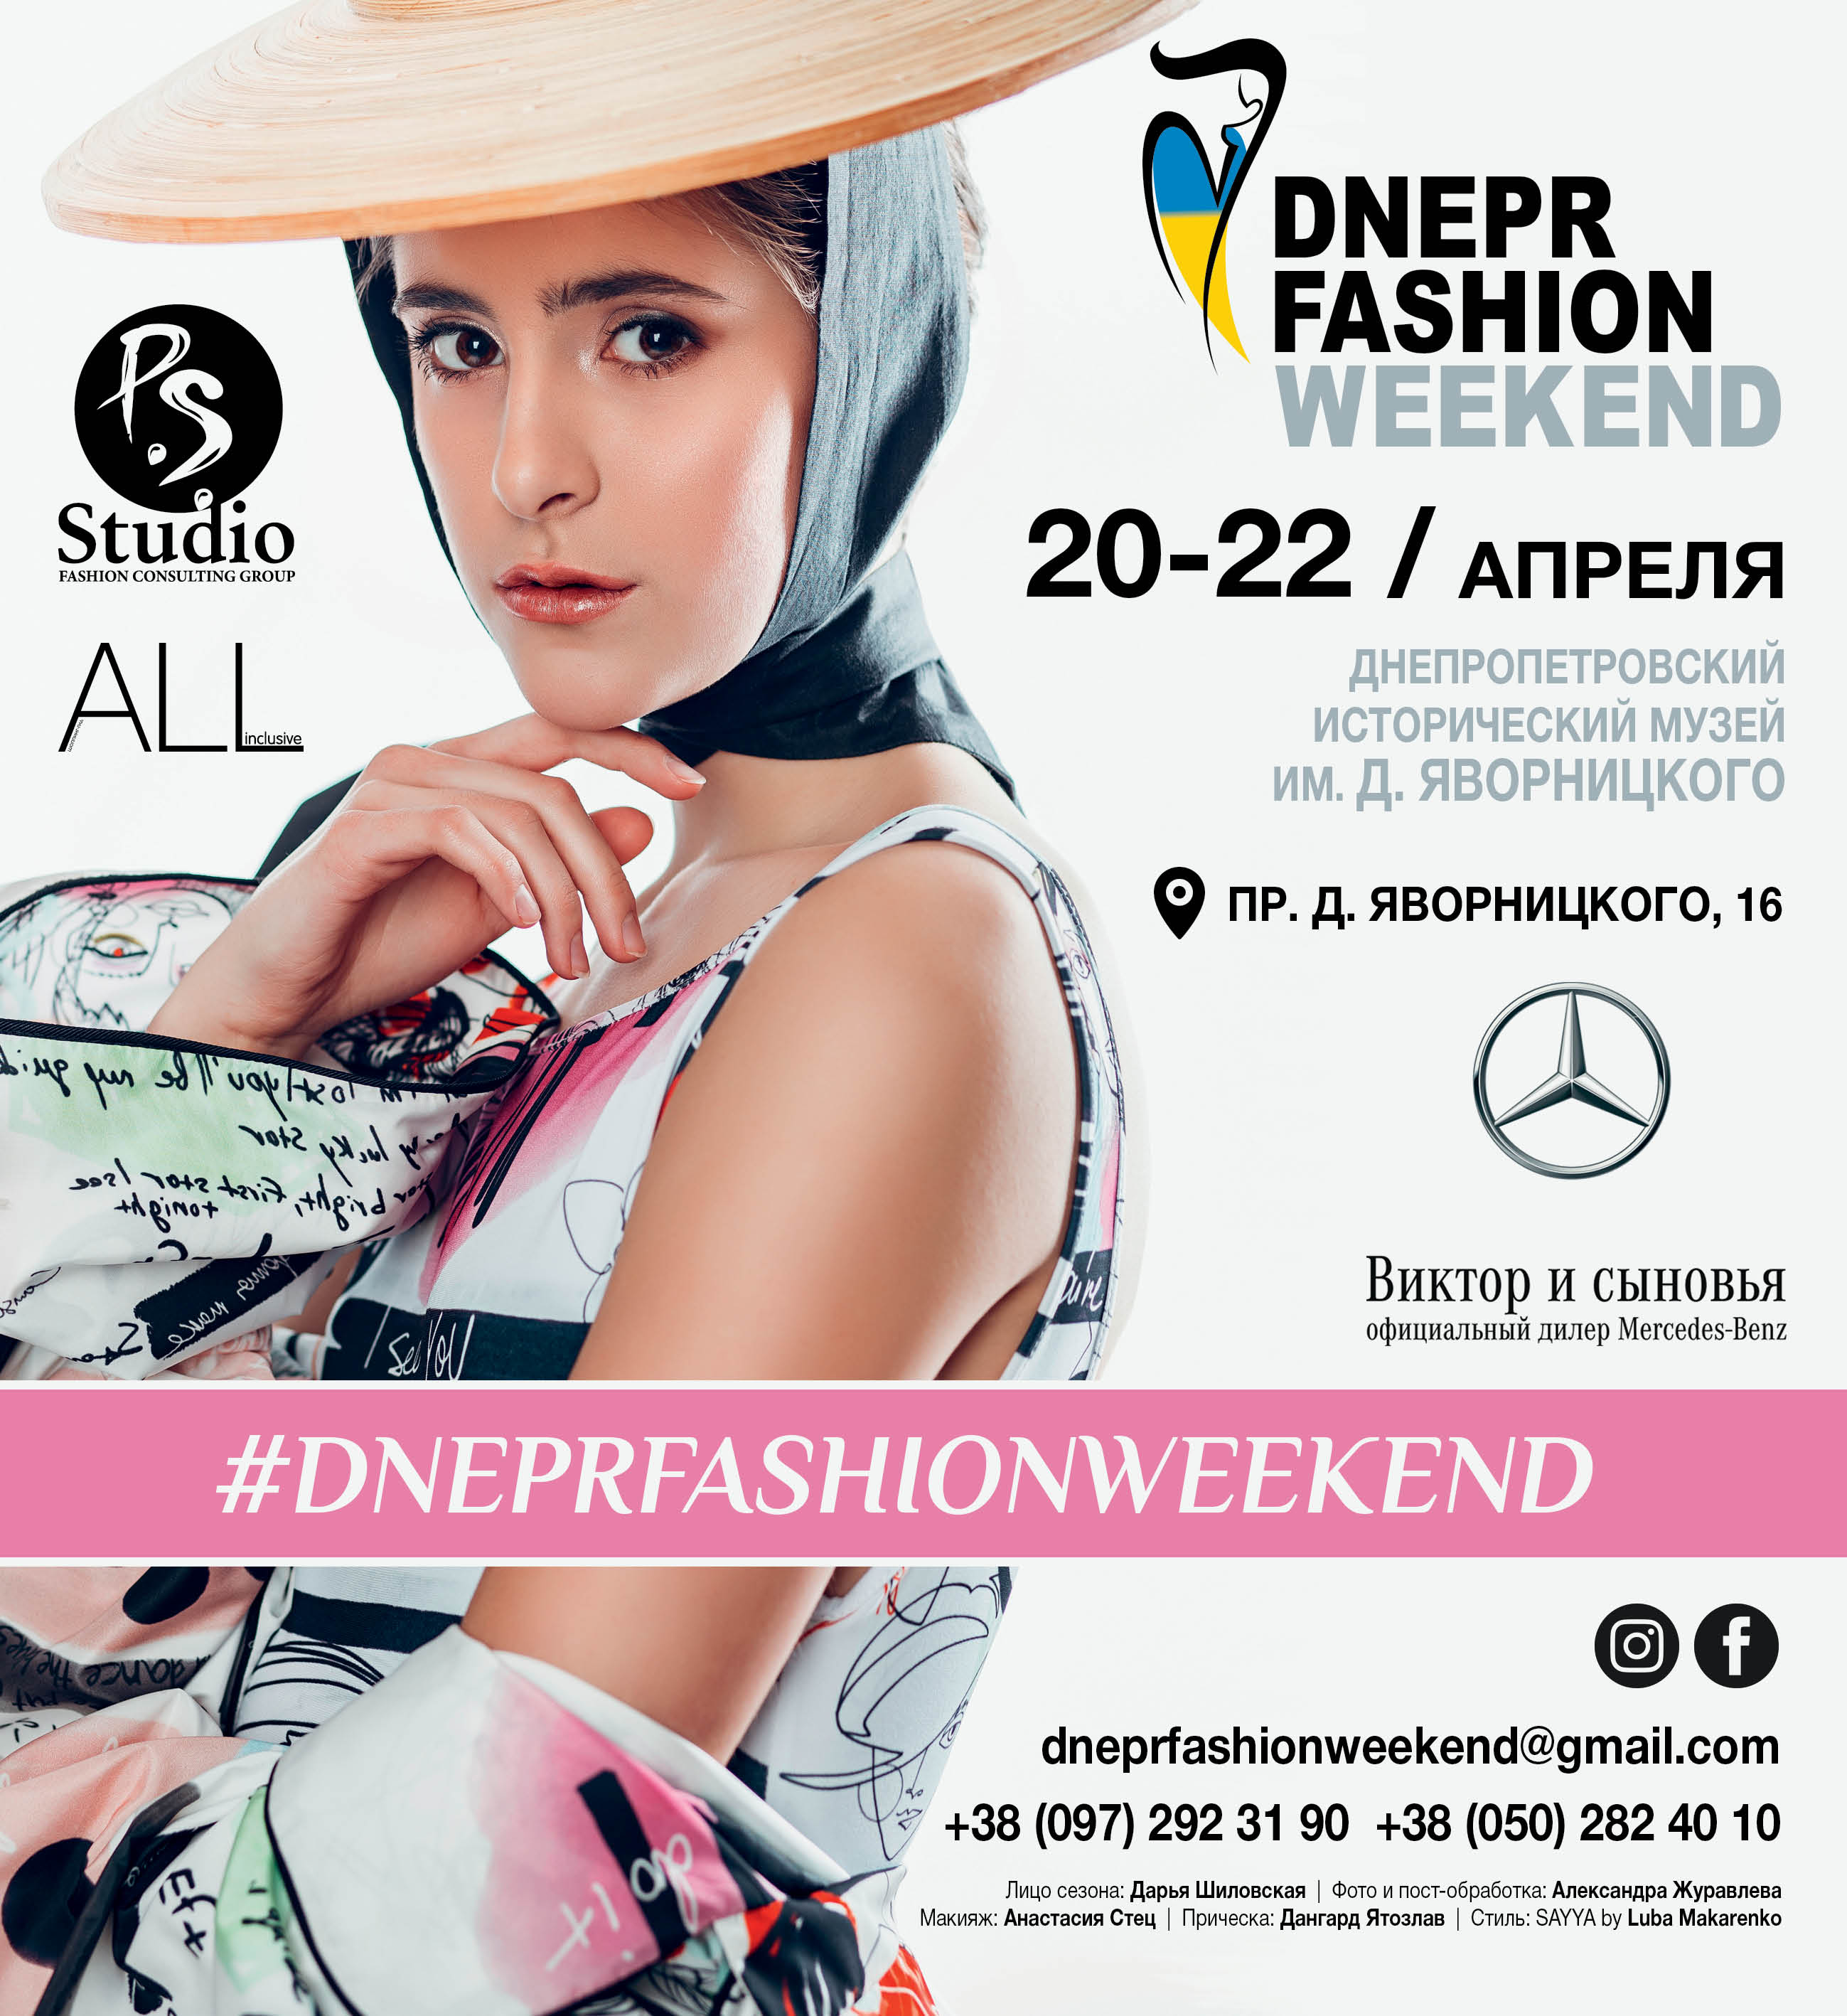 Dnepr Fashion Weekend 20 22 апреля 2 - GUO PEI COUTURE ОСЕНЬ-ЗИМА 2018/2019